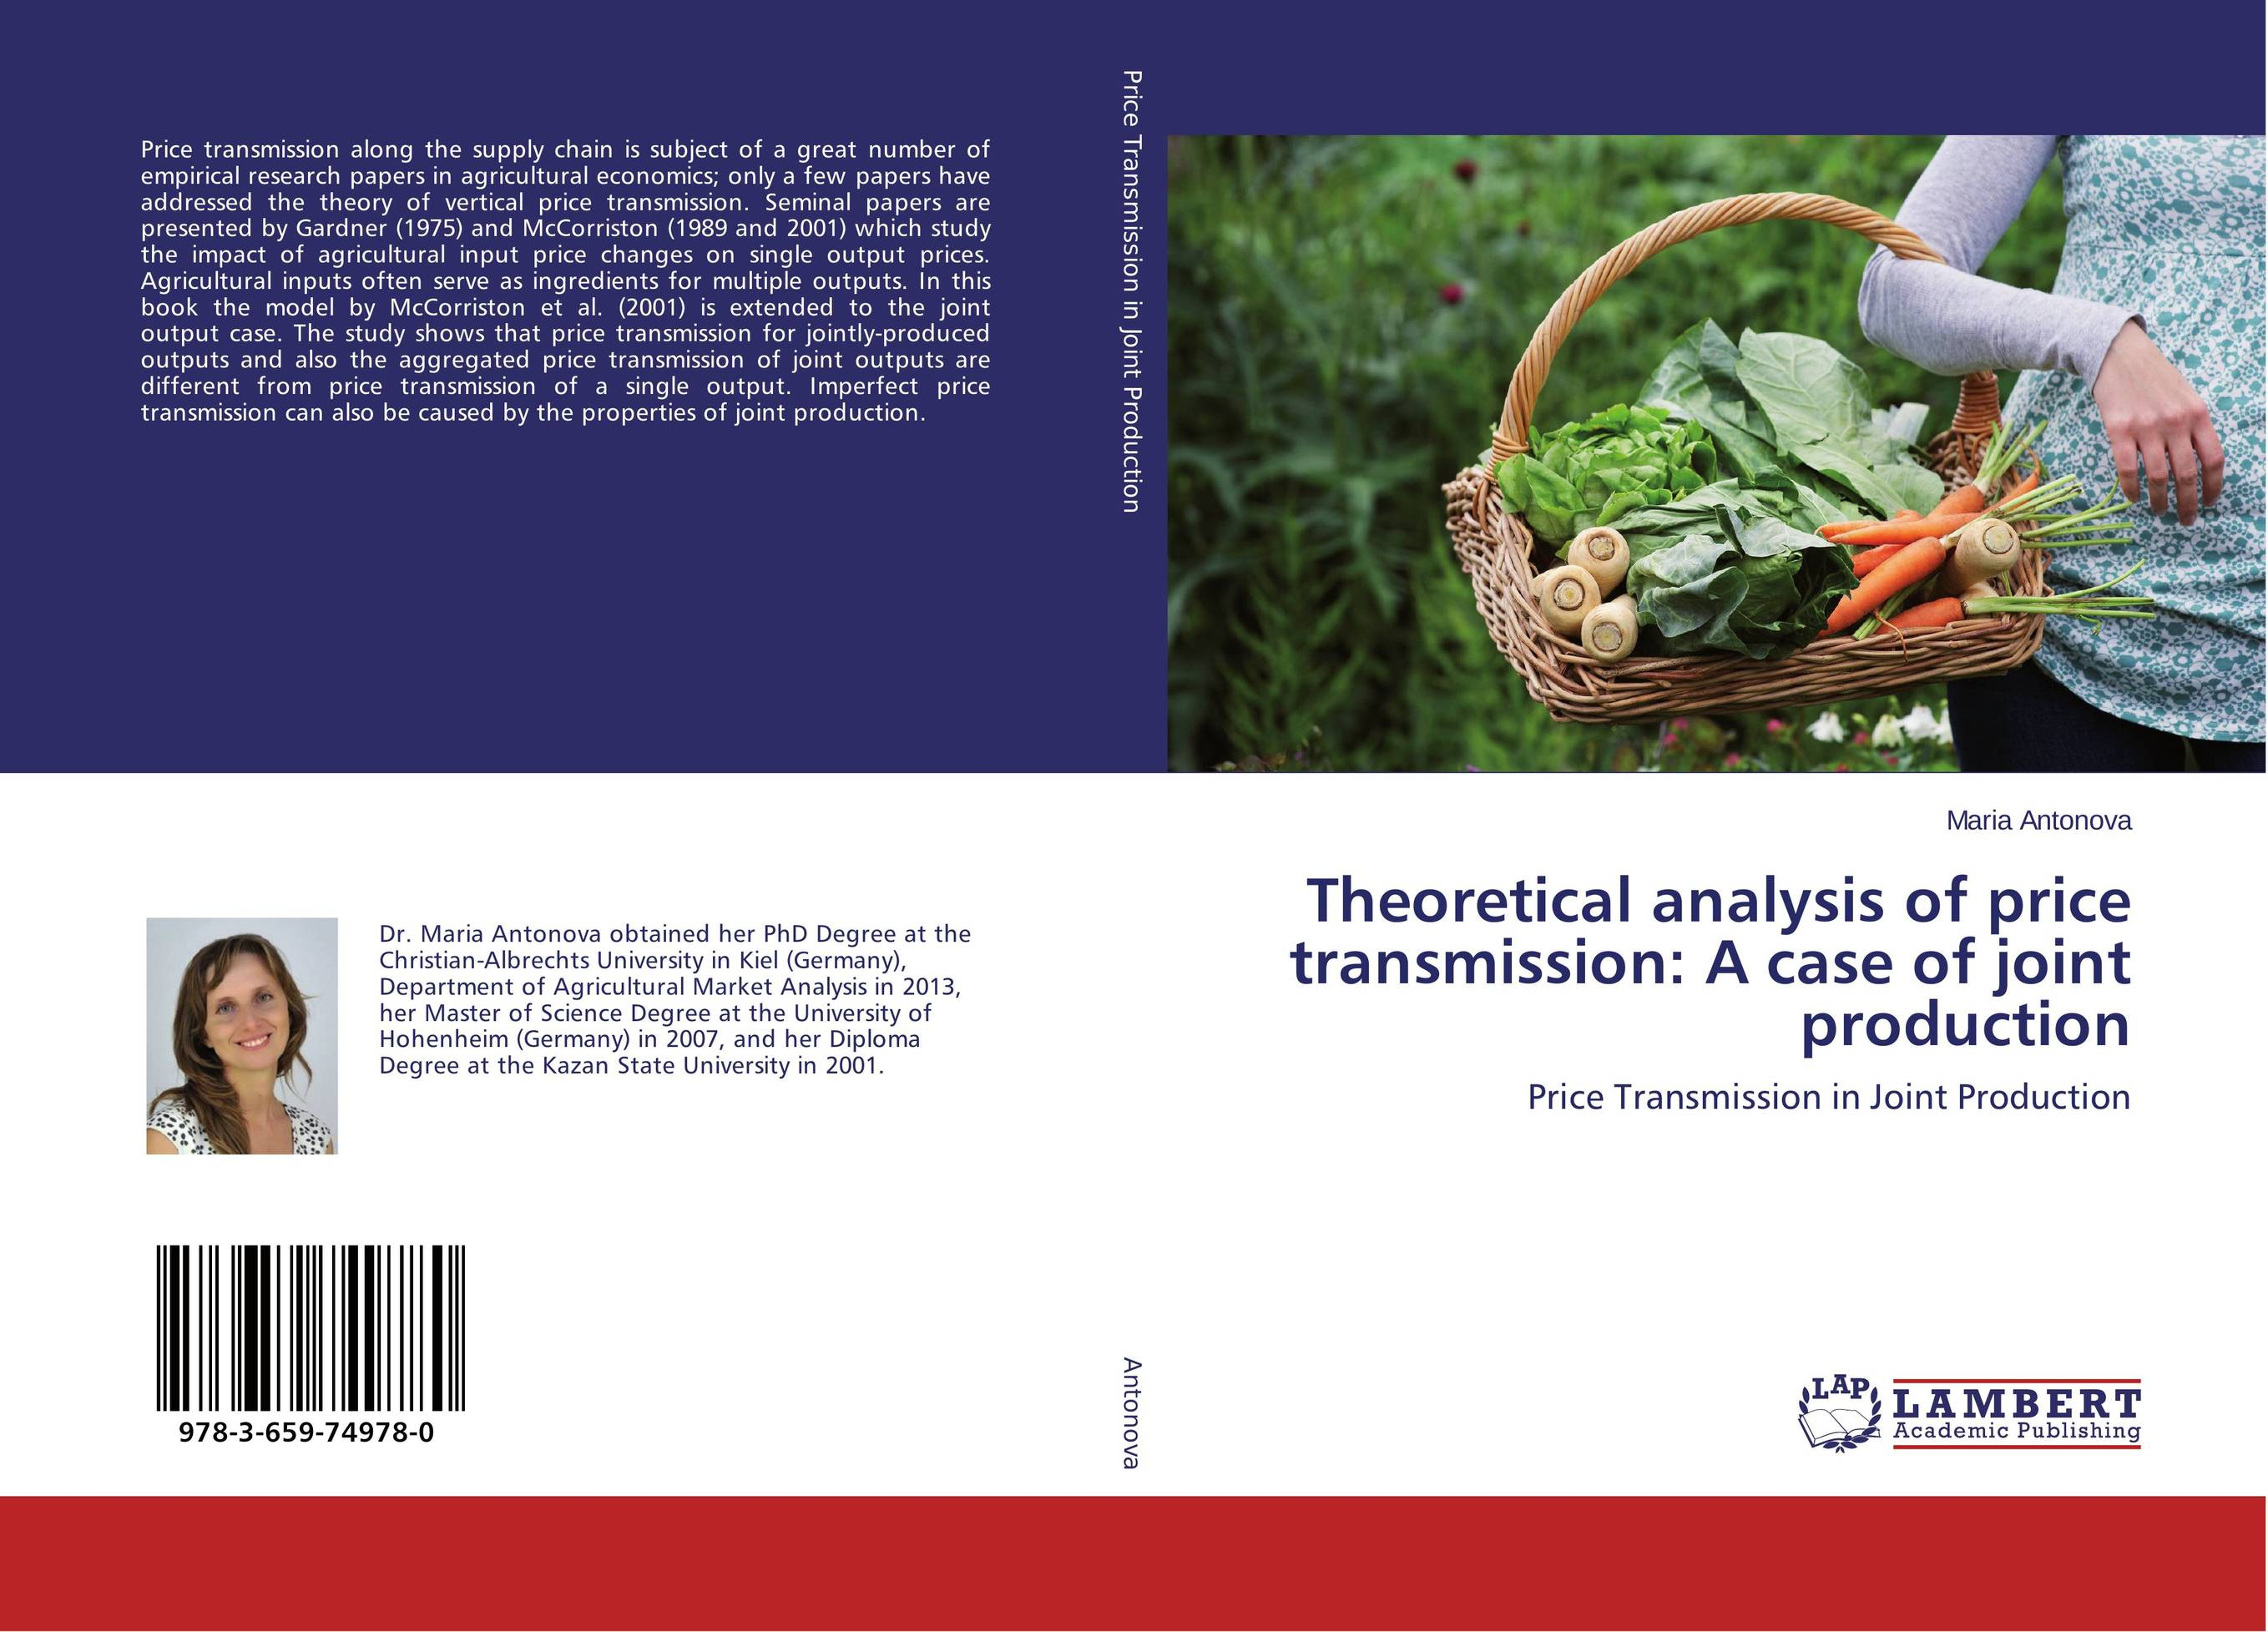 Theoretical analysis of price transmission: A case of joint production best price of mimaki jv3 solvent head unlocked